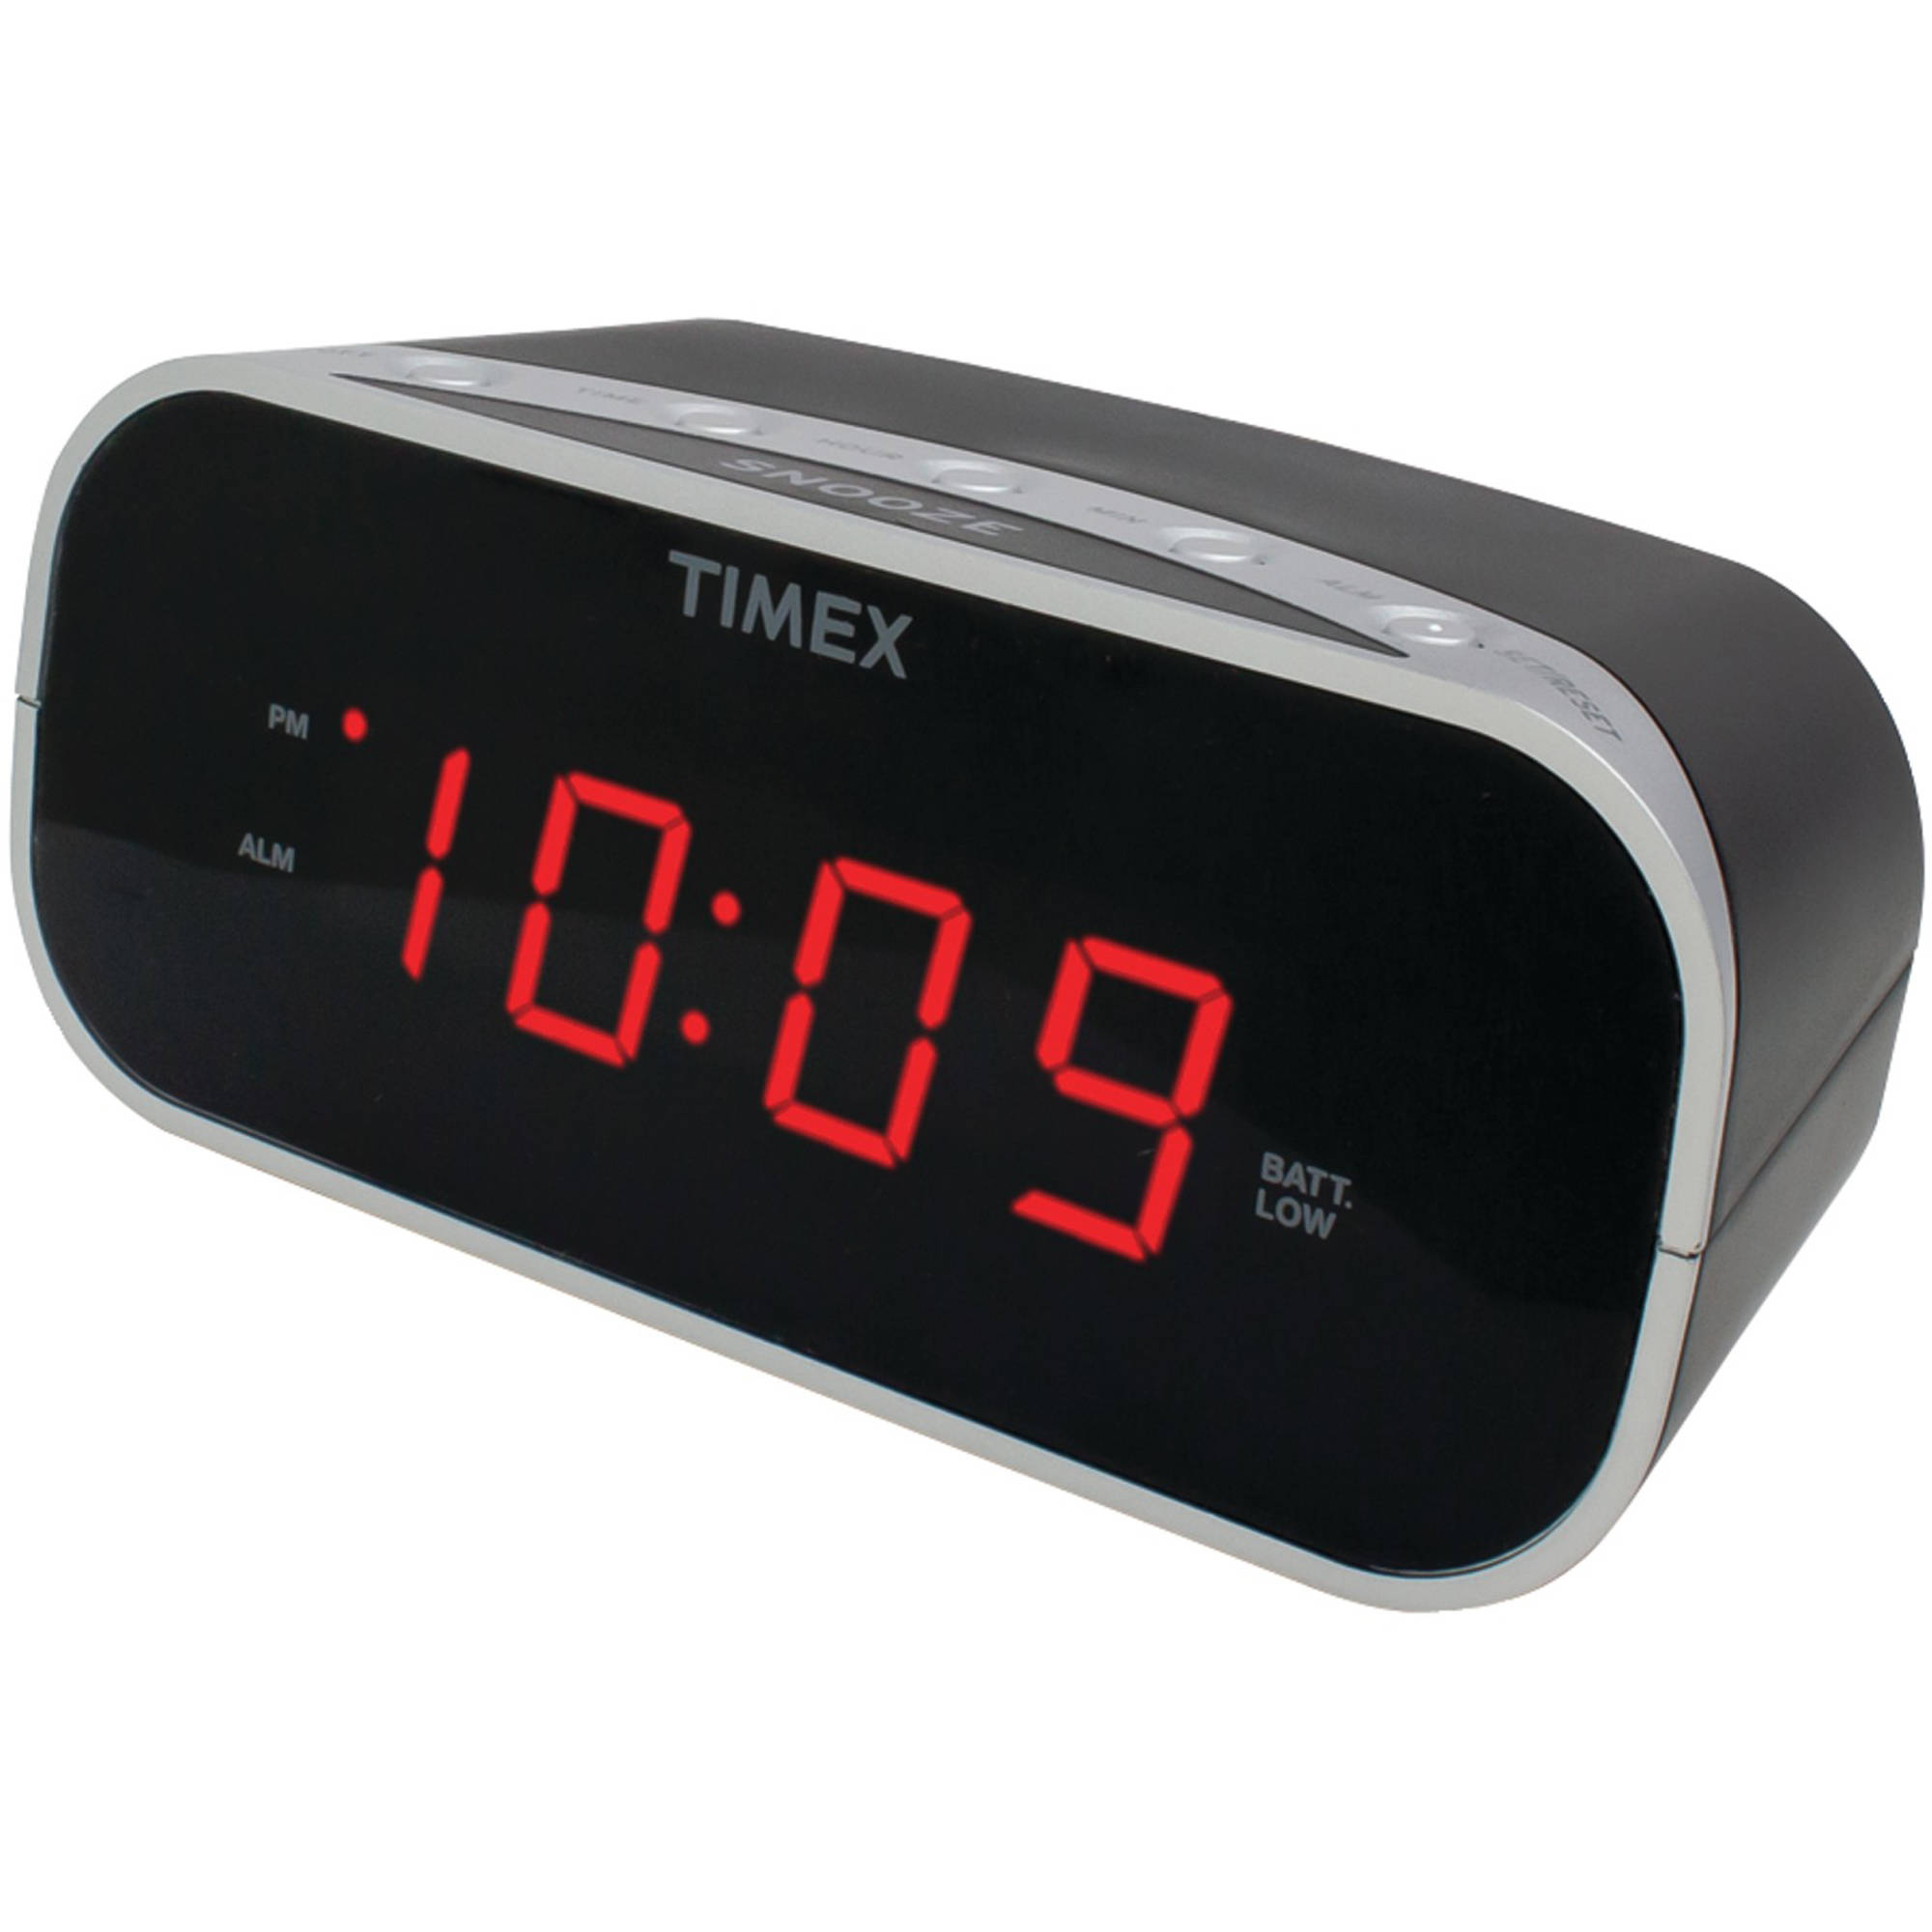 "Timex T121B Alarm Clock with 0.7"" Red Display, Black"